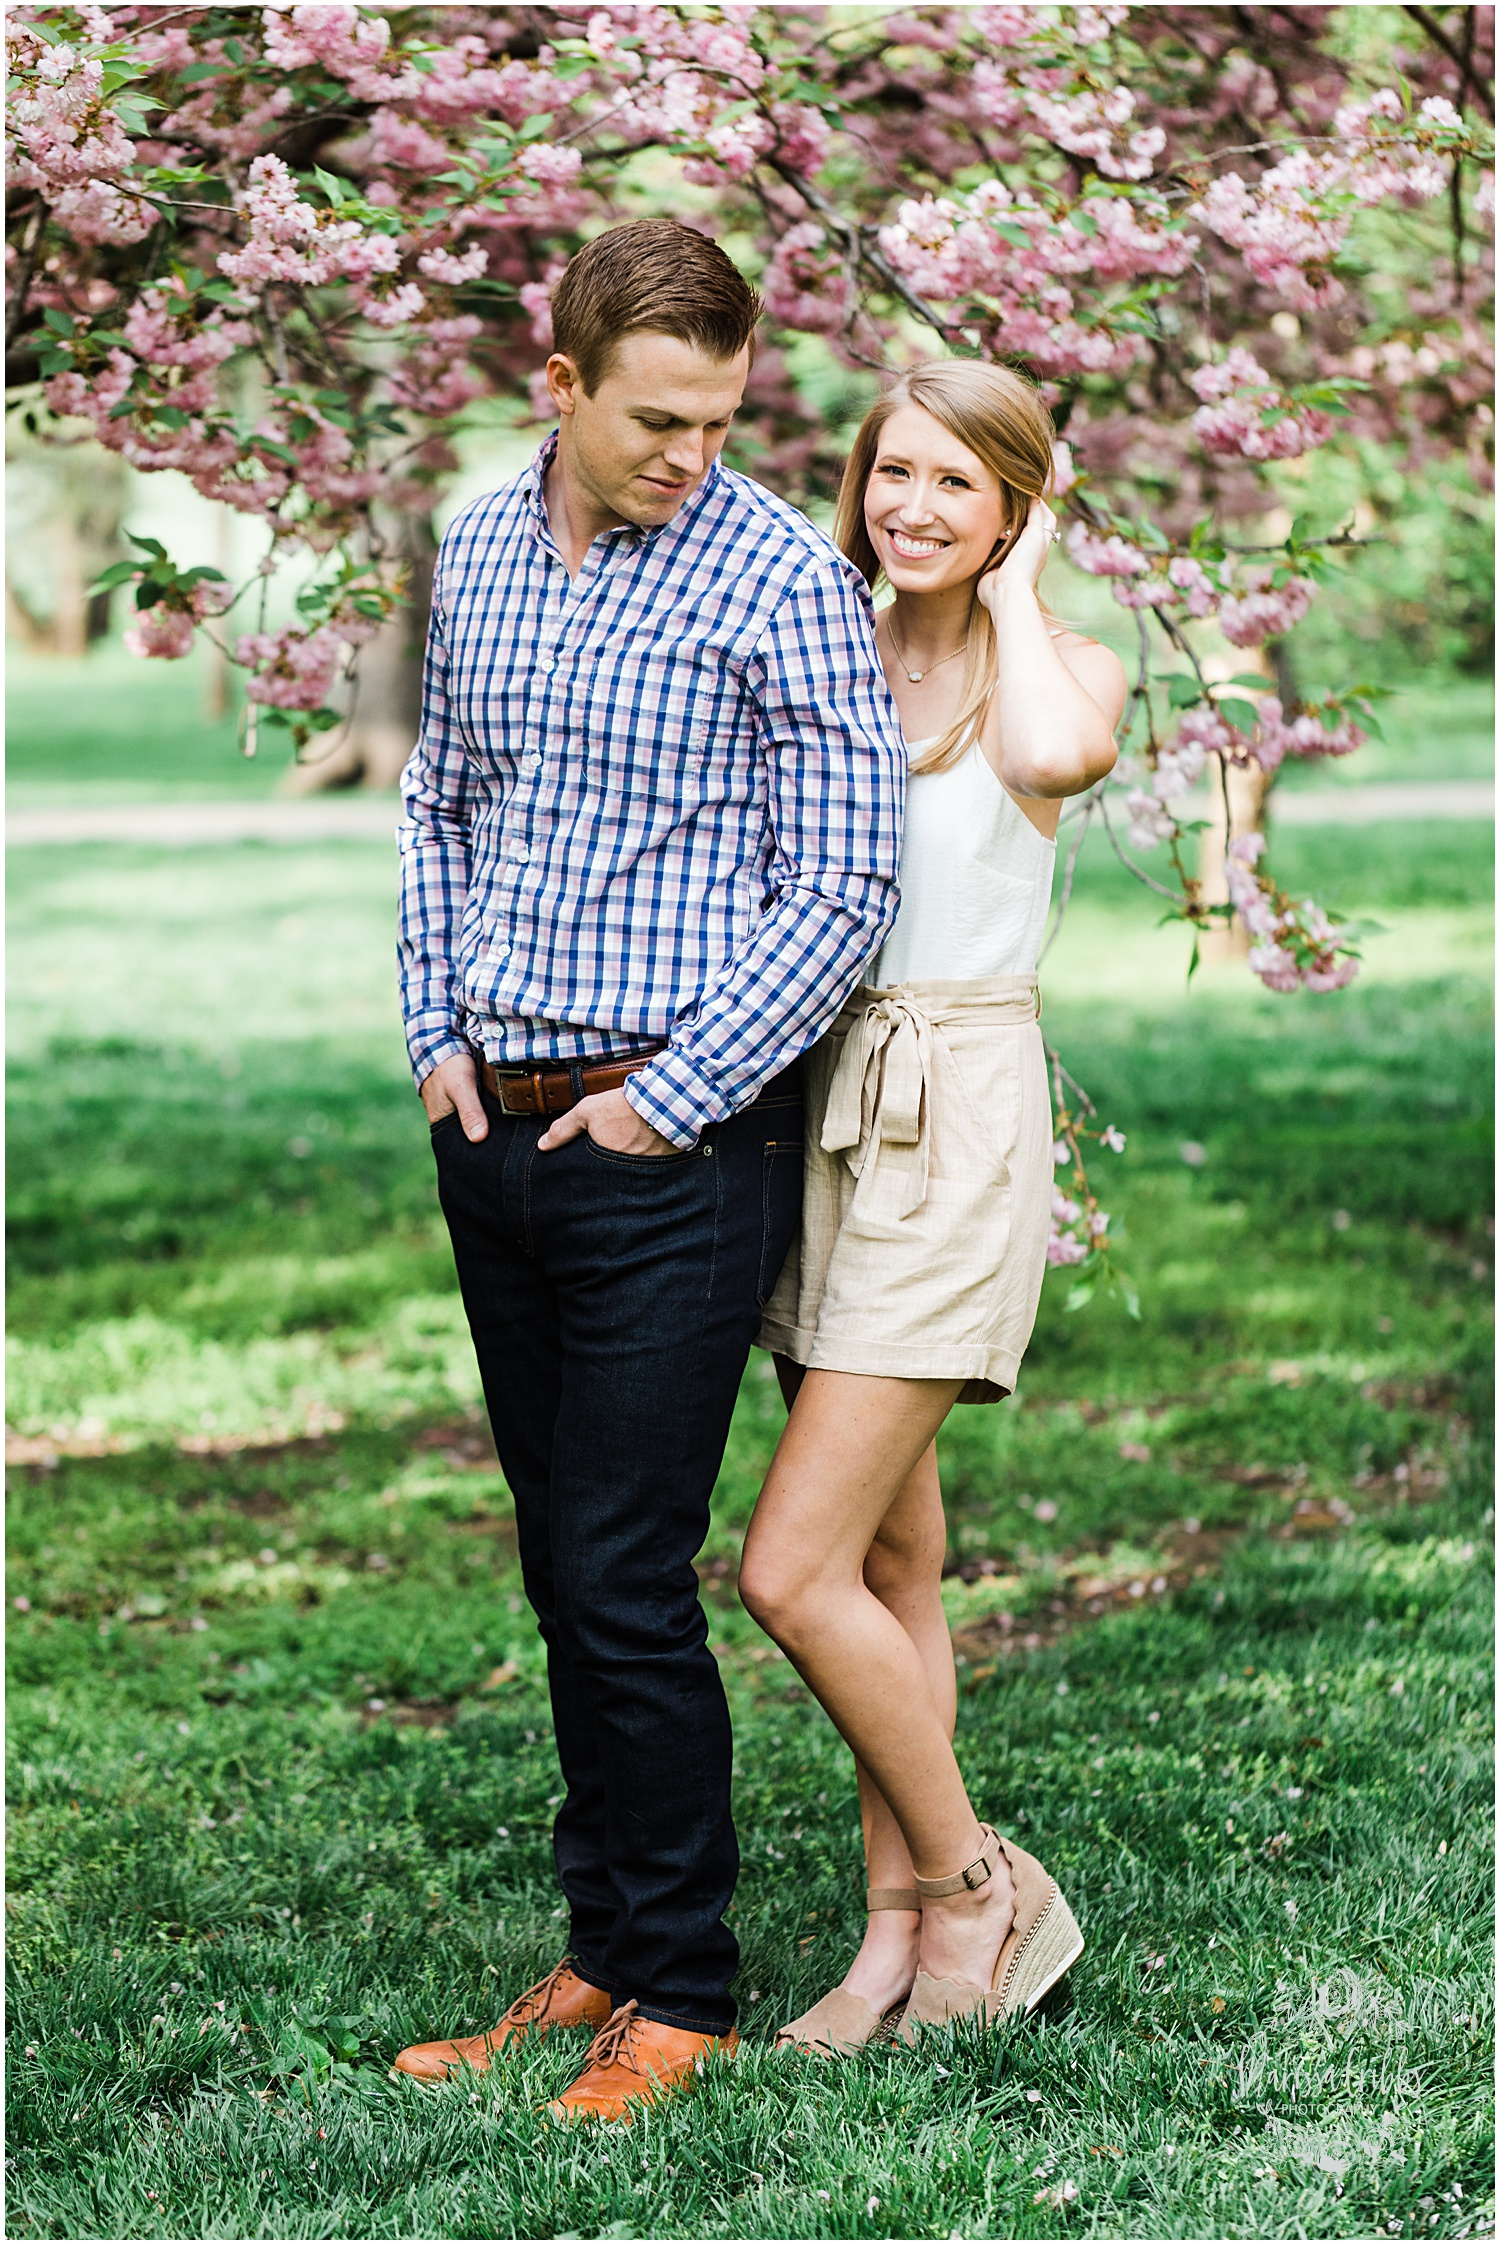 MADDY & KYLE ENGAGEMENT | MARISSA CRIBBS PHOTOGRAPHY_7603.jpg